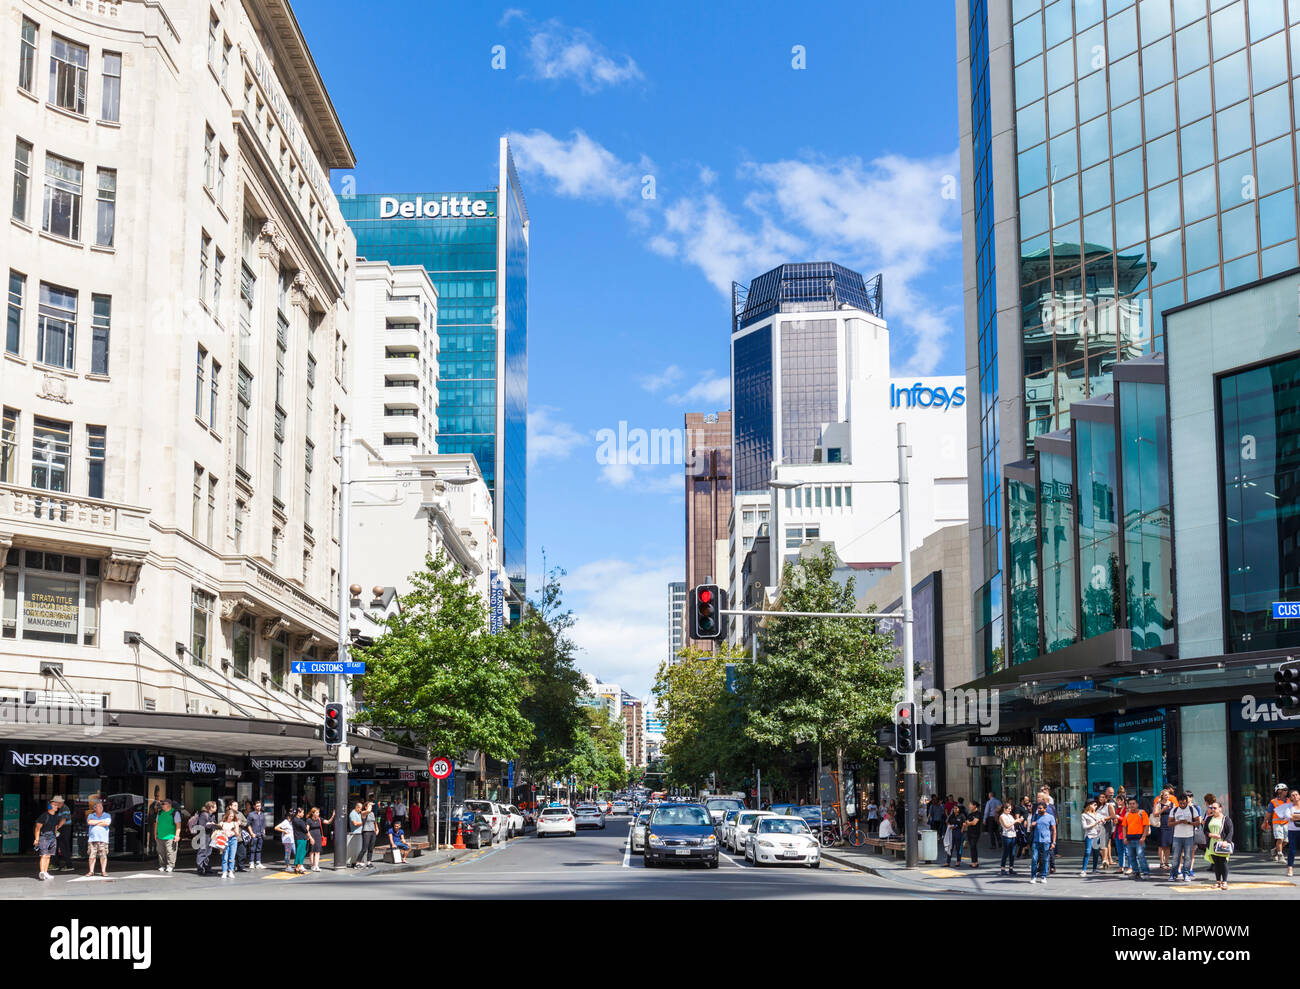 new zealand auckland new zealand traffic queued queen street shopping street city centre auckland north island new zealand - Stock Image